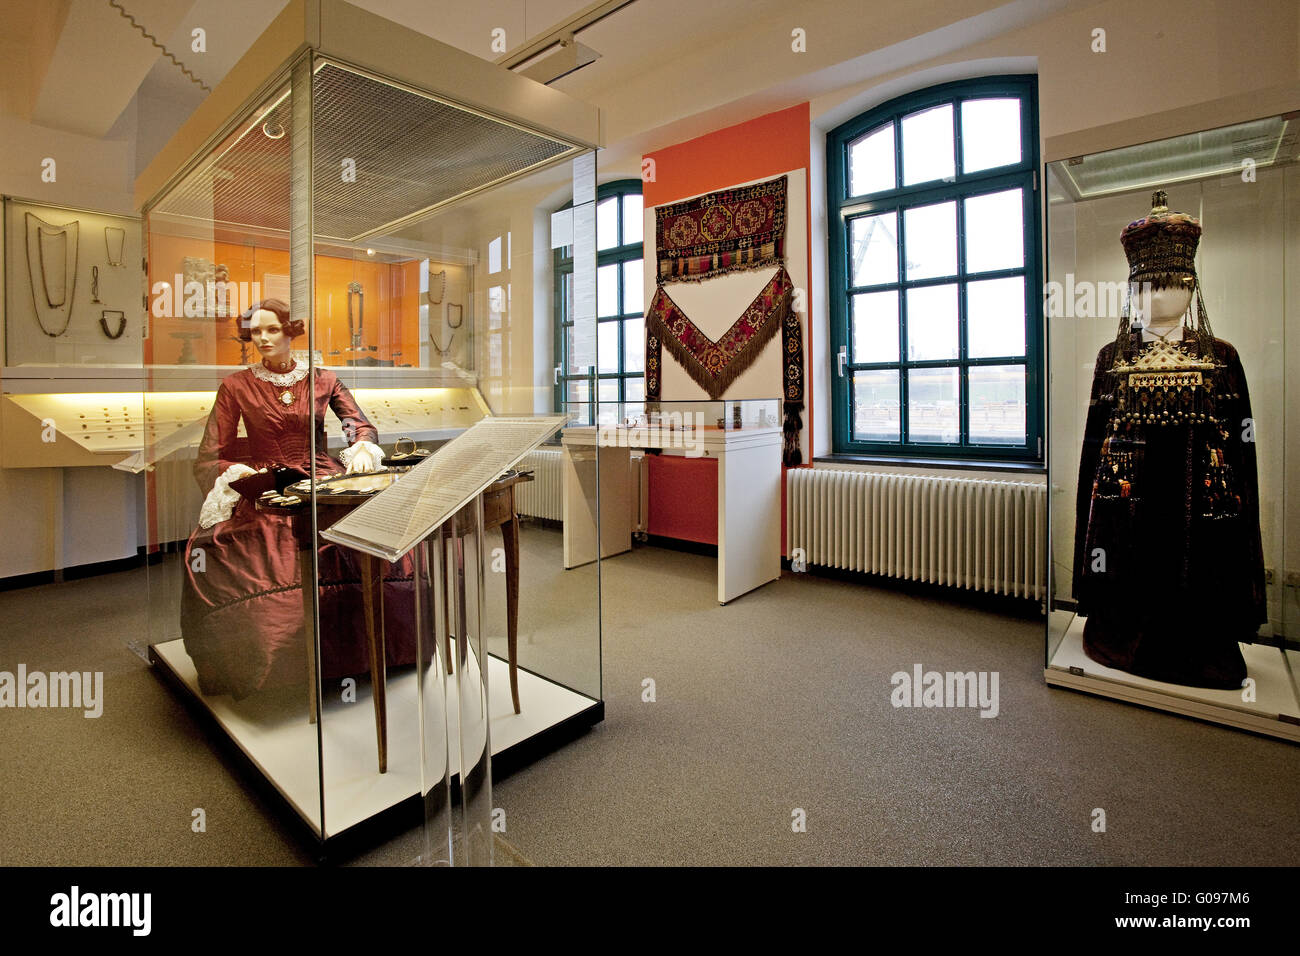 Culture and Local History Museum, Duisburg,Germany - Stock Image